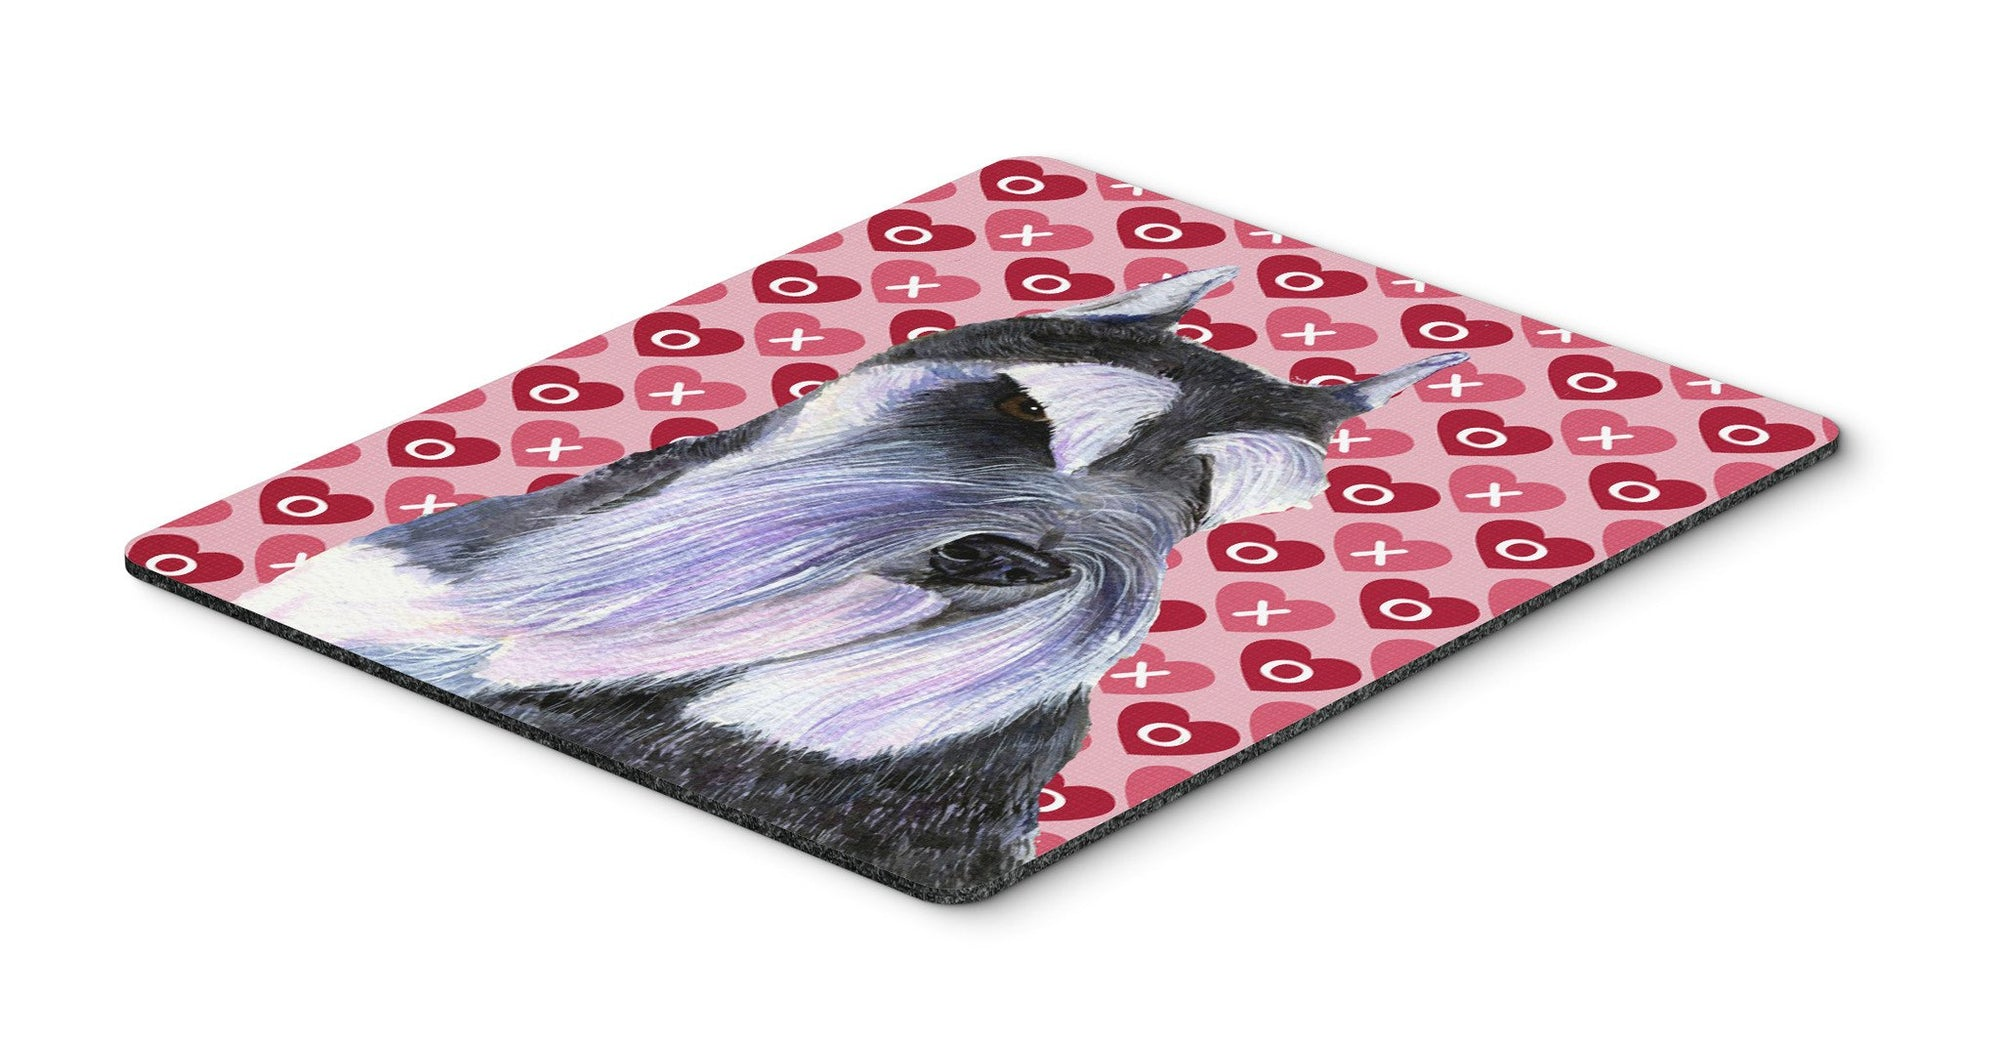 Schnauzer Hearts Love and Valentine's Day Portrait Mouse Pad, Hot Pad or Trivet by Caroline's Treasures